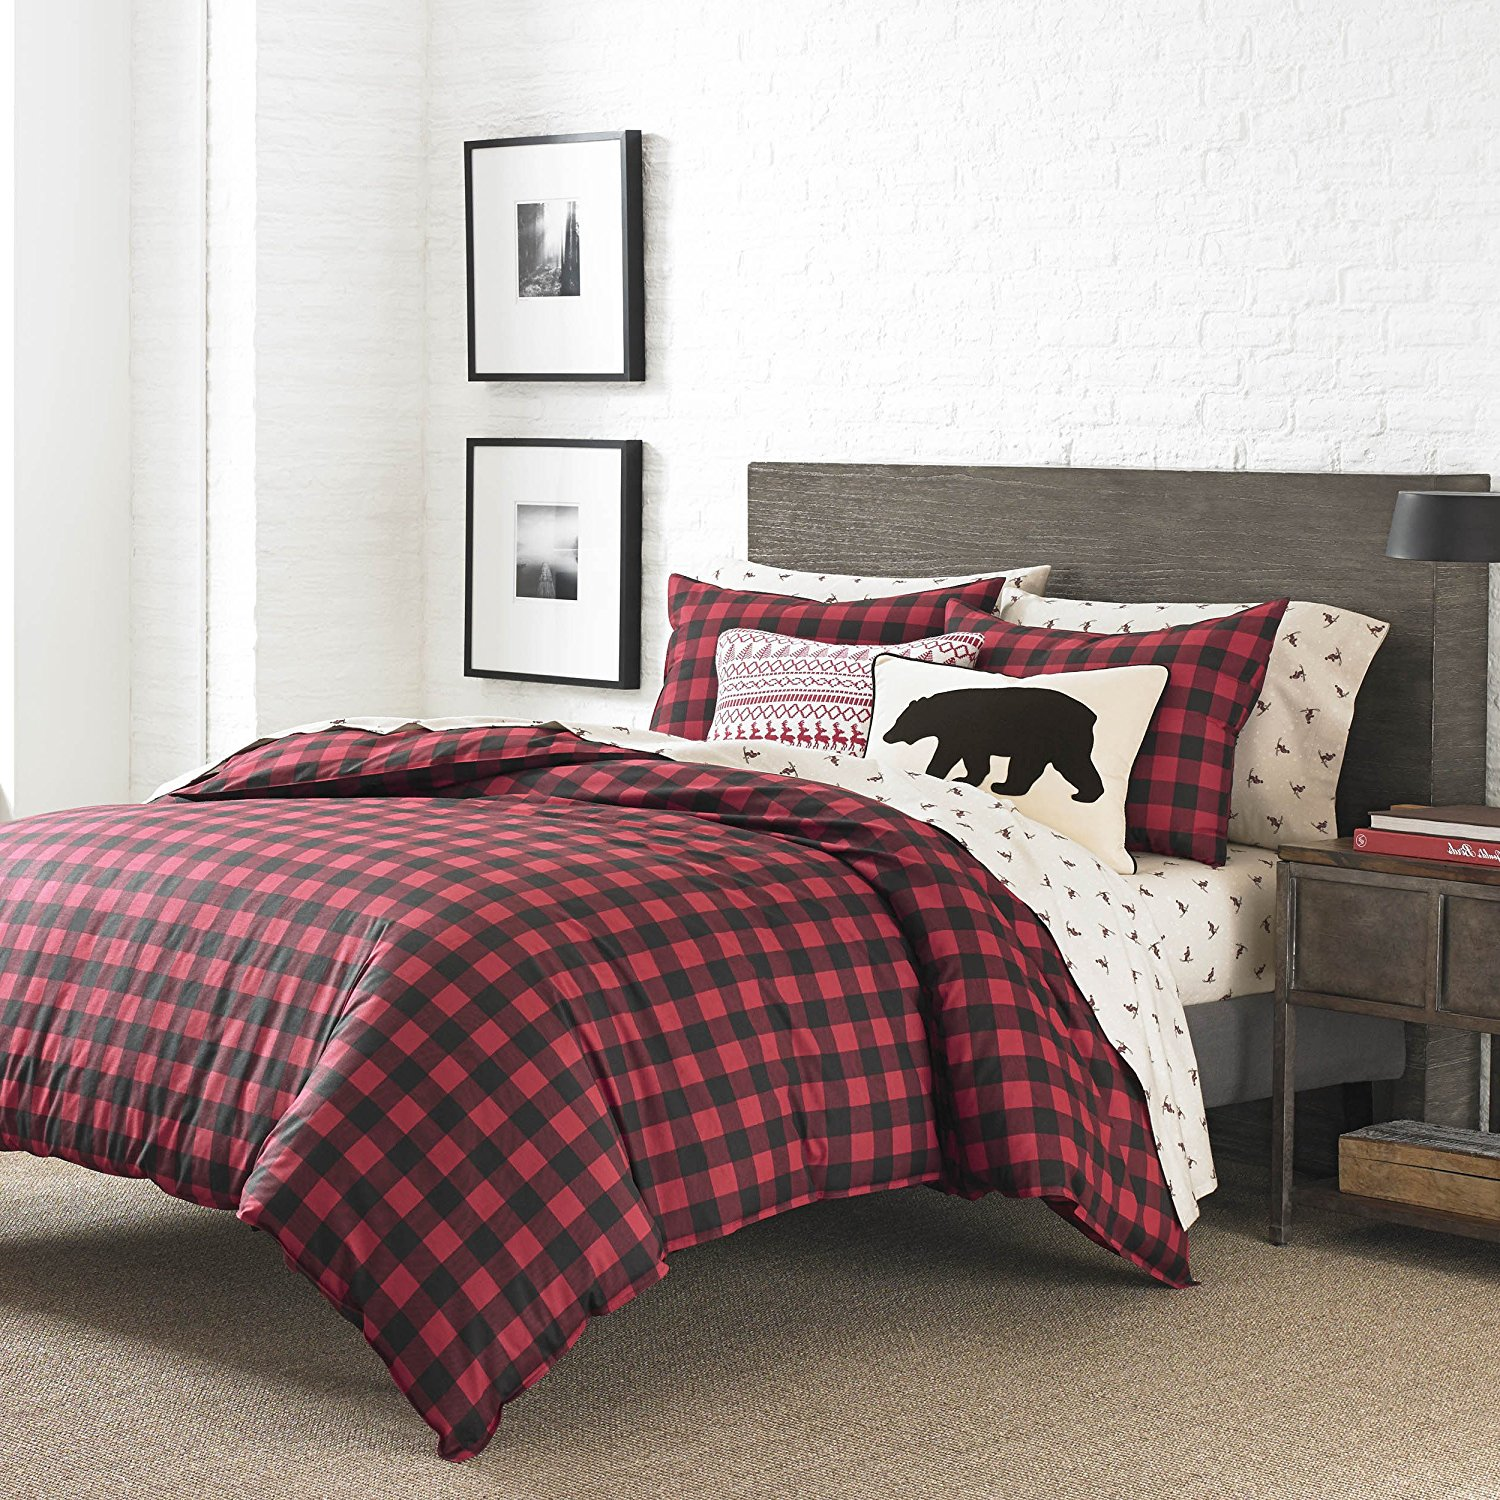 3 Piece Black Red Plaid Comforter Full Queen Set, Cabin Themed Bedding Checked Lumberjack Pattern Lodge Southwest Tartan Madras Crisscross Squares Hunting, Percale Cotton